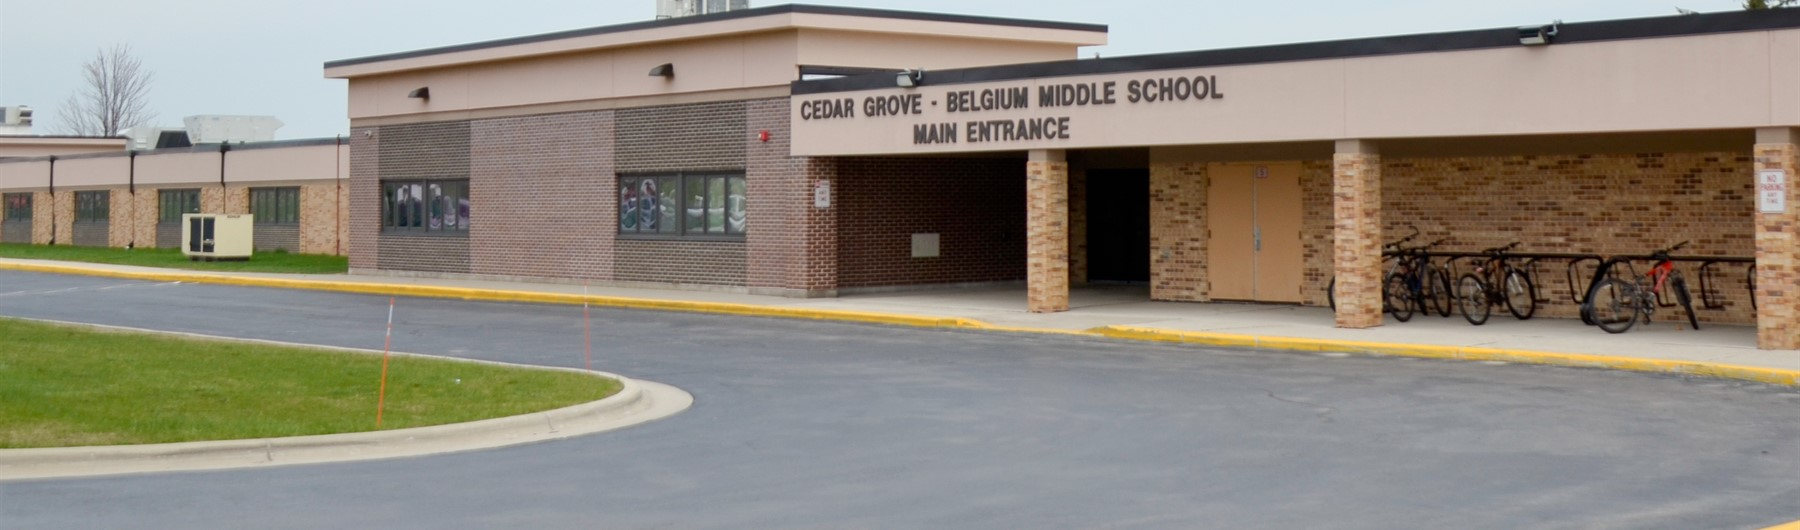 Cedar Grove Belgium Middle School